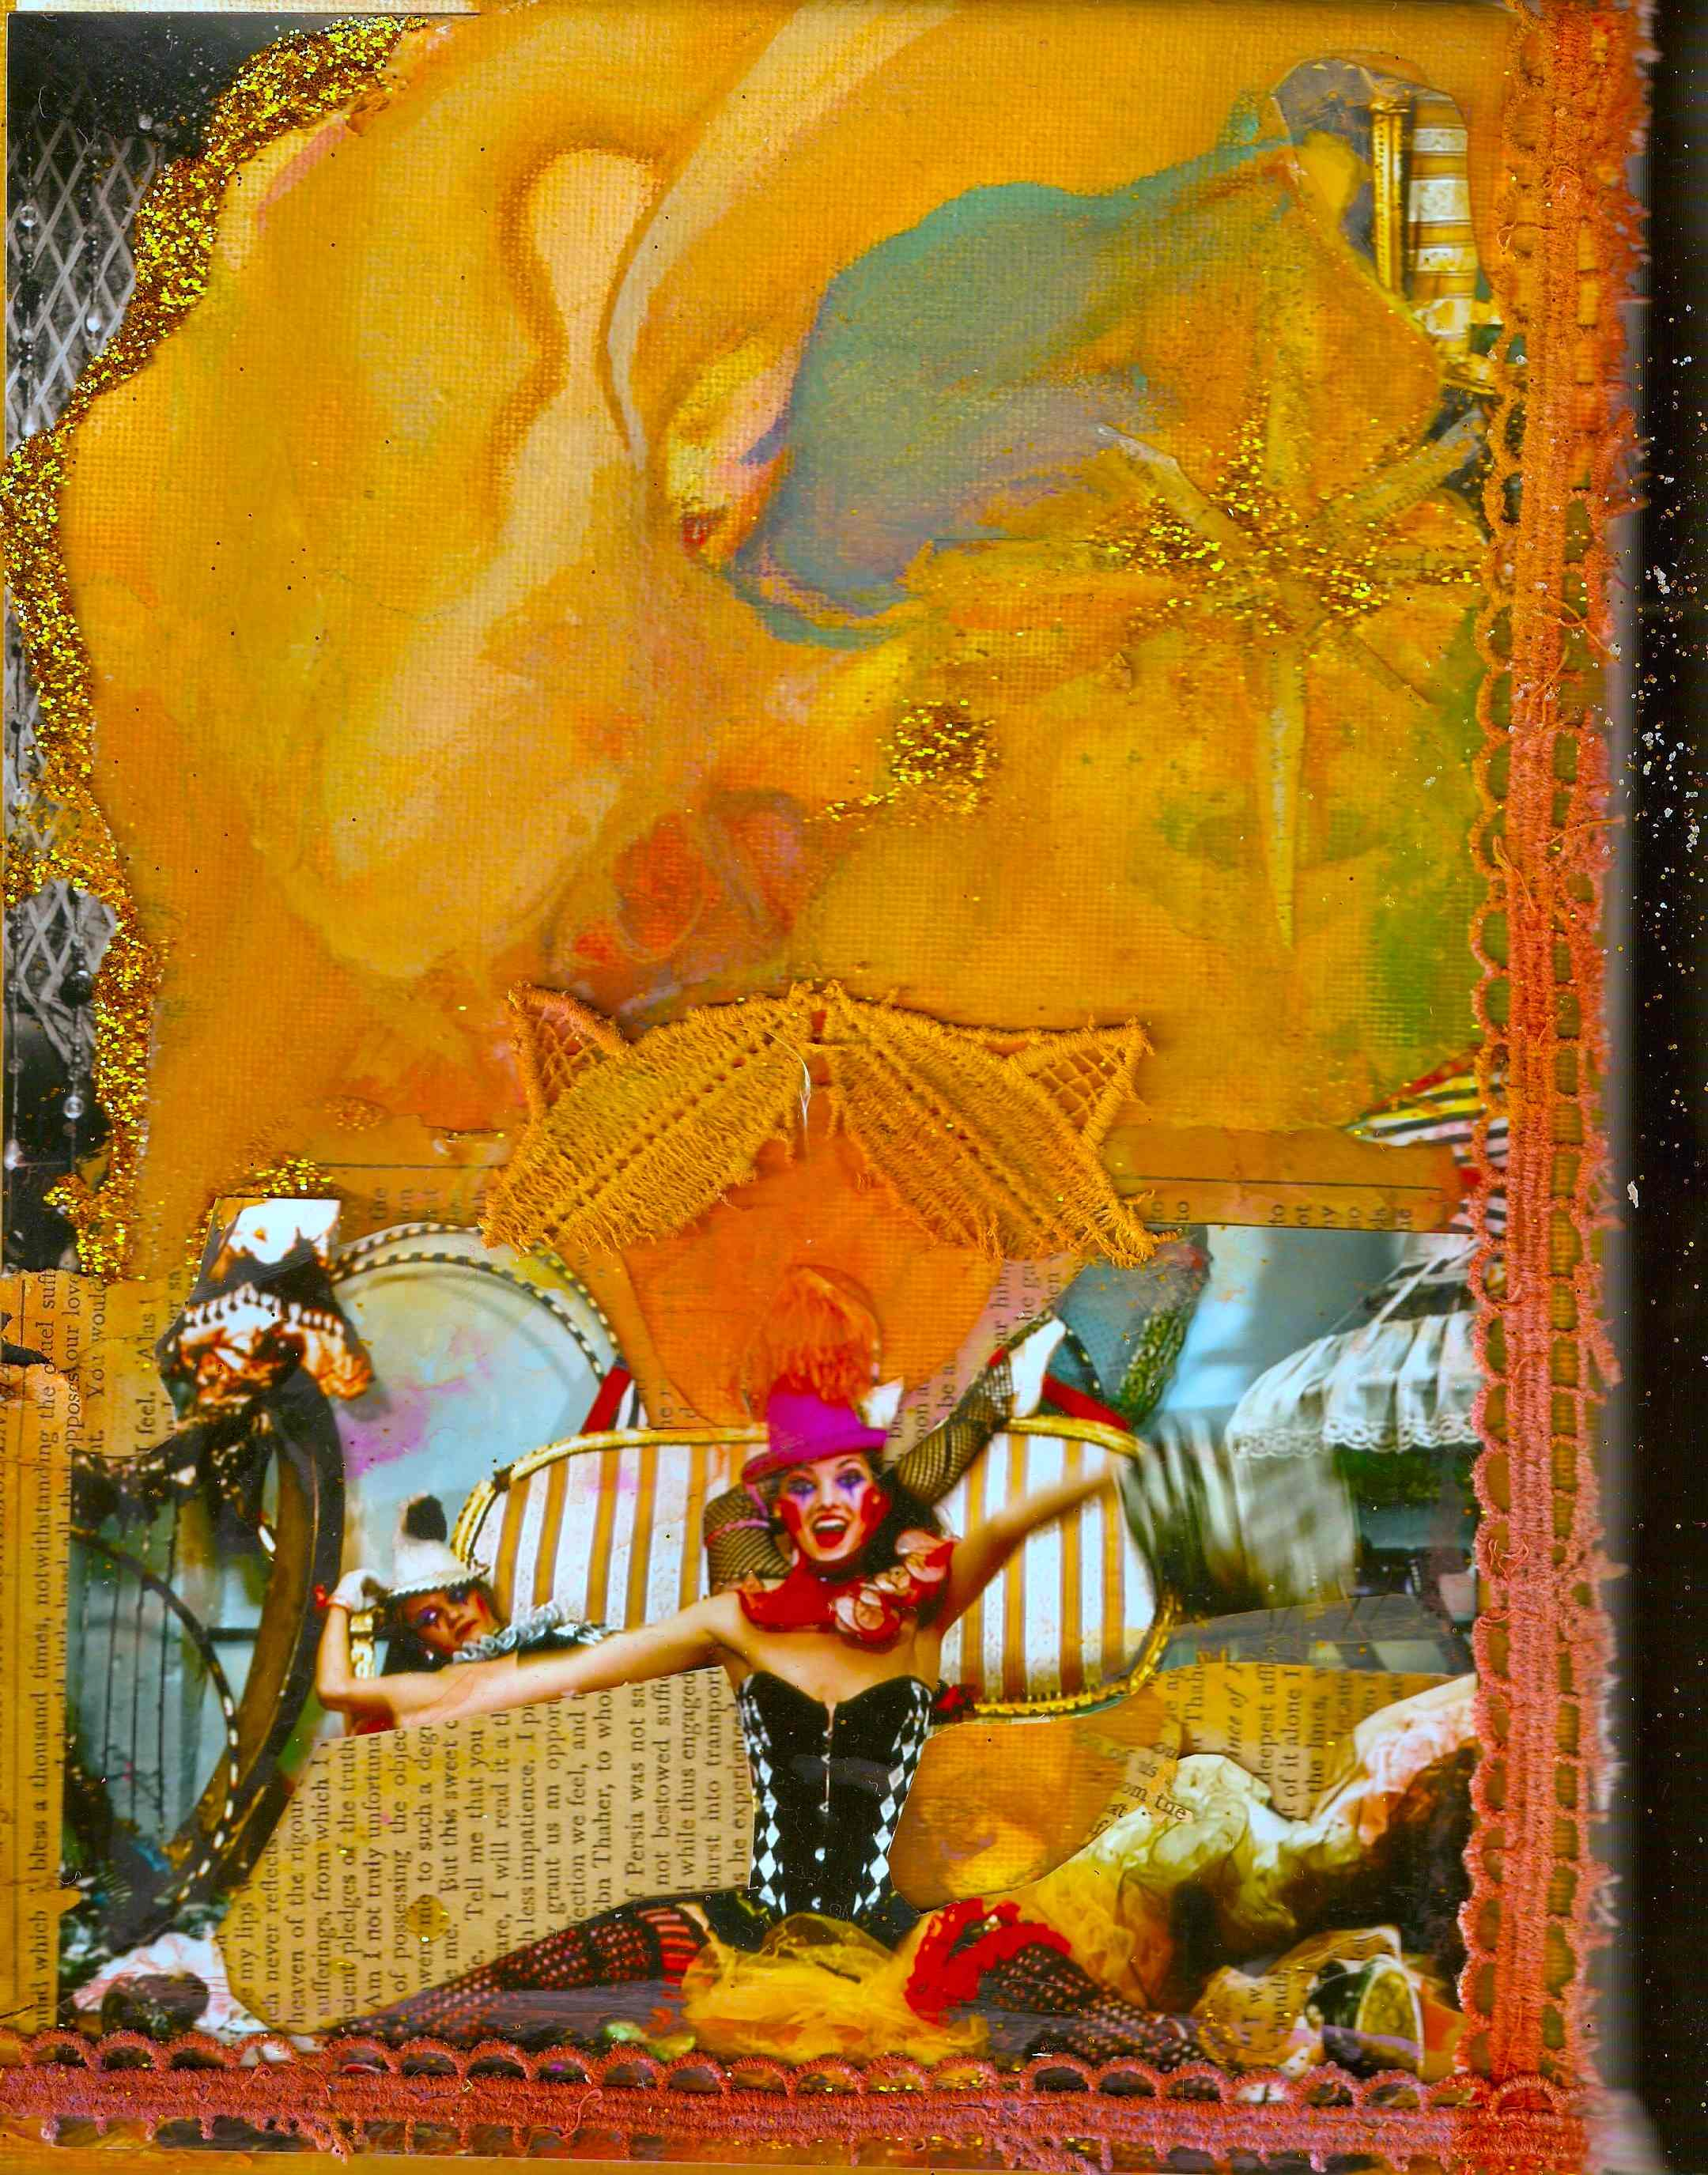 Harlequin & Stardust Collage: